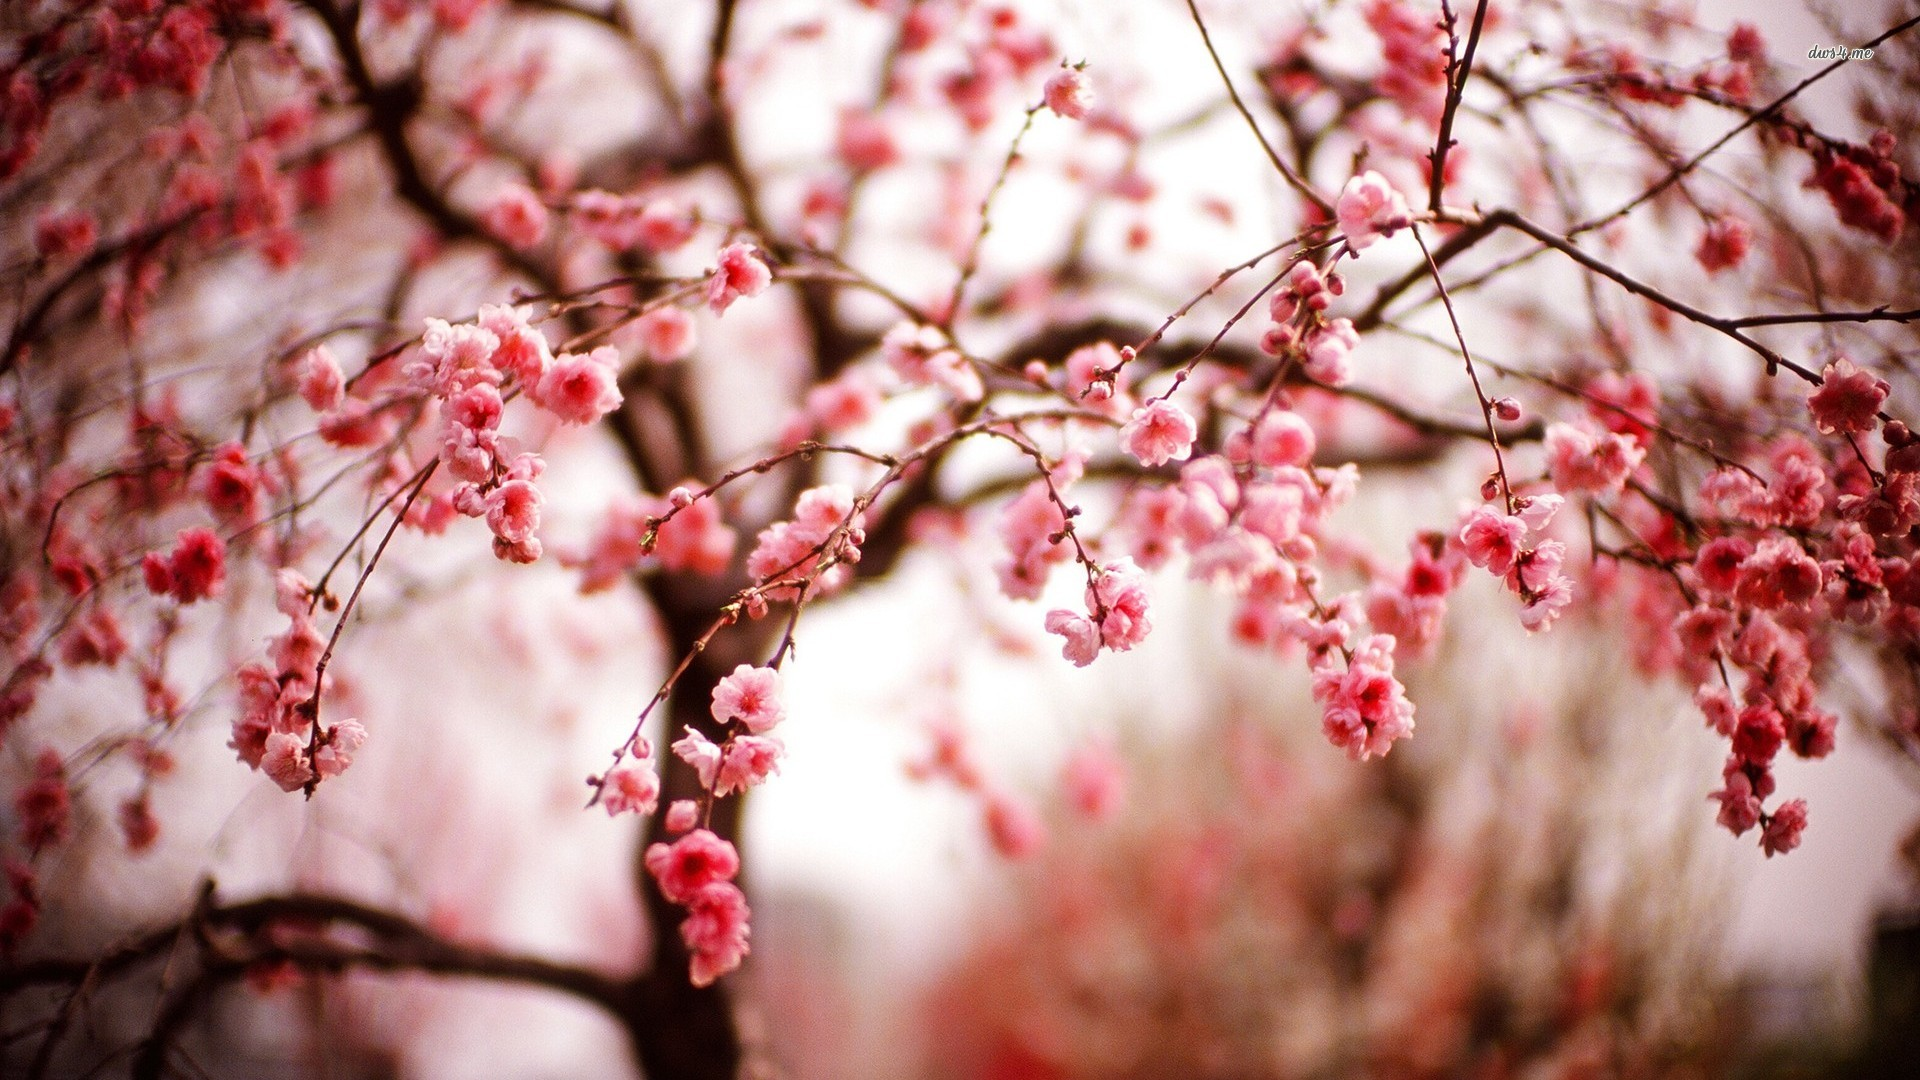 Must see Wallpaper High Resolution Cherry Blossom - cherry-blossom-26871-27587-hd-wallpapers  Trends_28143.jpg